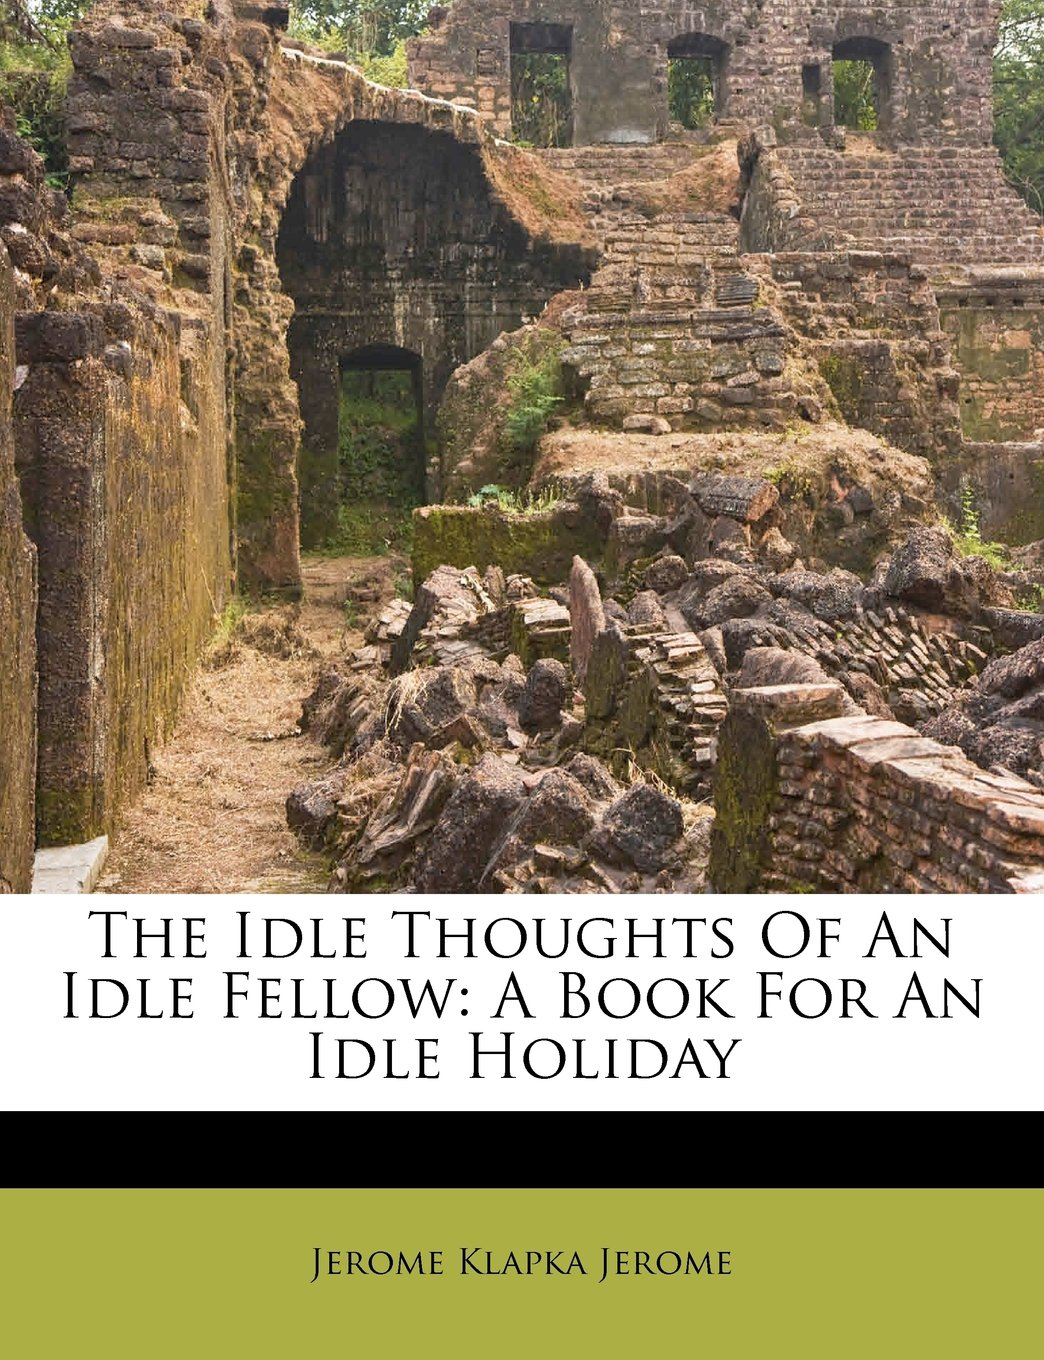 Download The Idle Thoughts Of An Idle Fellow: A Book For An Idle Holiday PDF